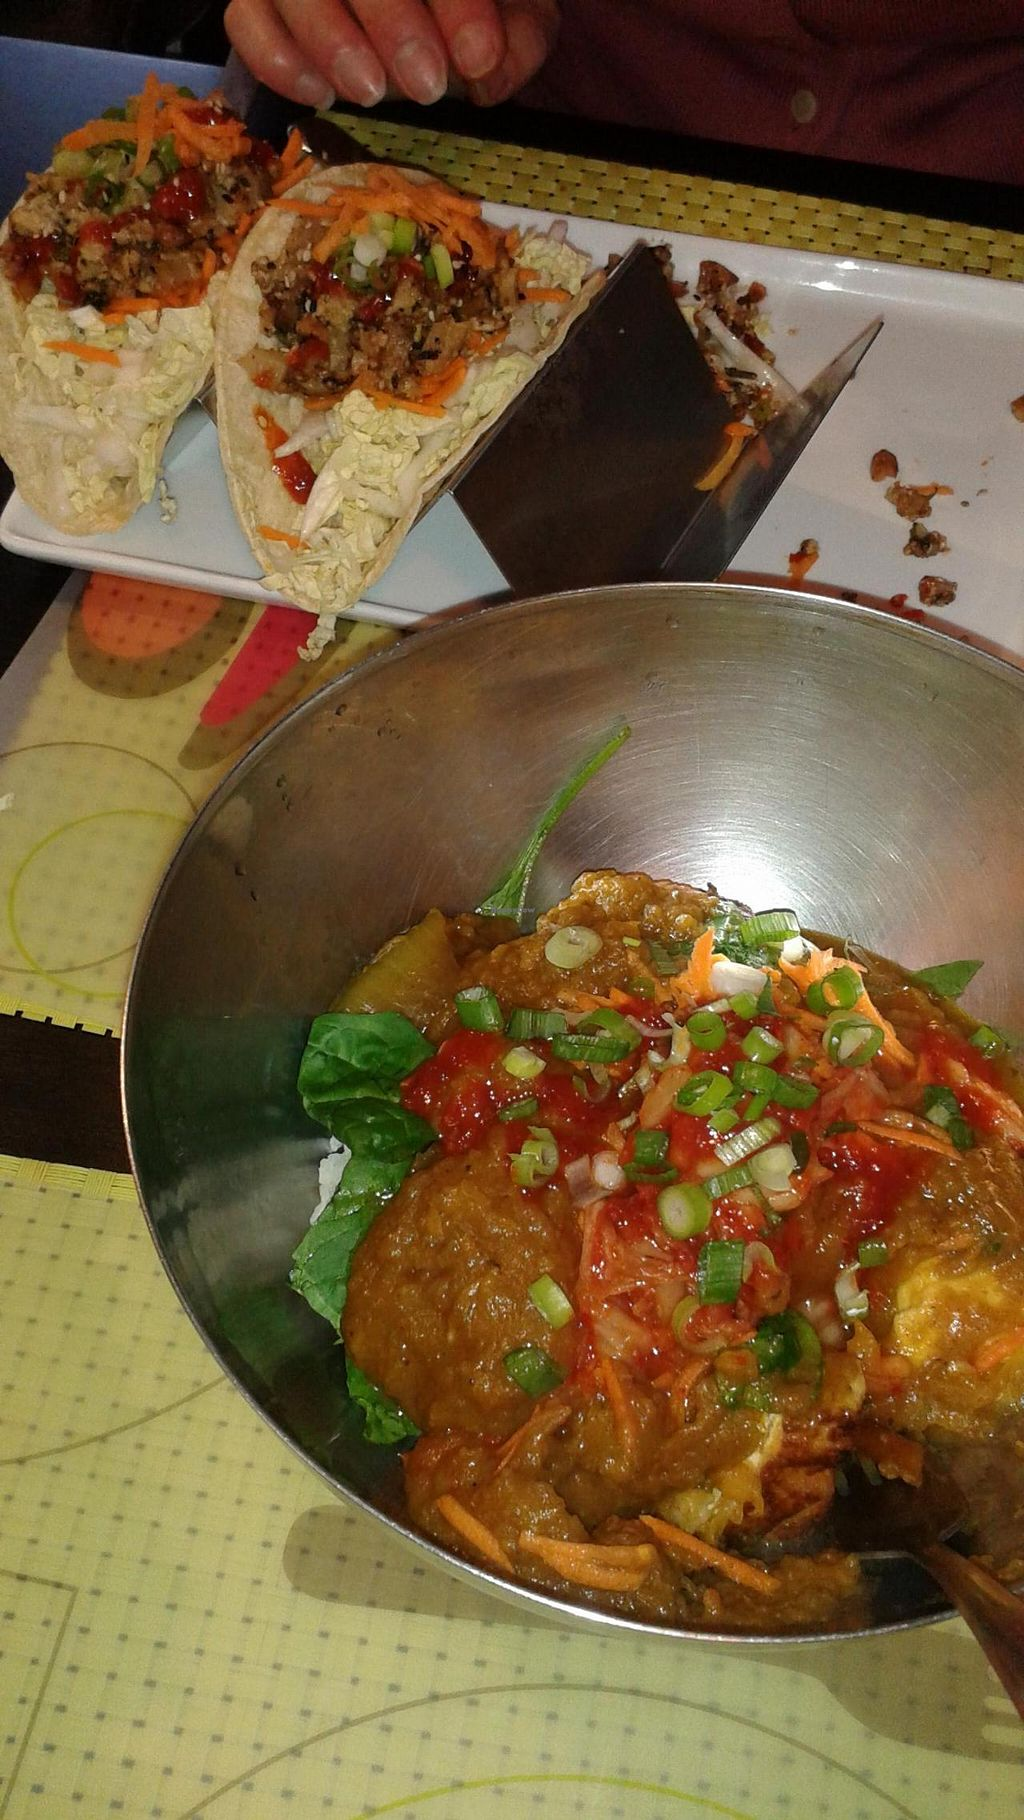 """Photo of Seoul Food DC  by <a href=""""/members/profile/jlaurenson"""">jlaurenson</a> <br/>Seasonal butternut squash curry and shitake tofu tacos <br/> October 11, 2014  - <a href='/contact/abuse/image/47992/82659'>Report</a>"""